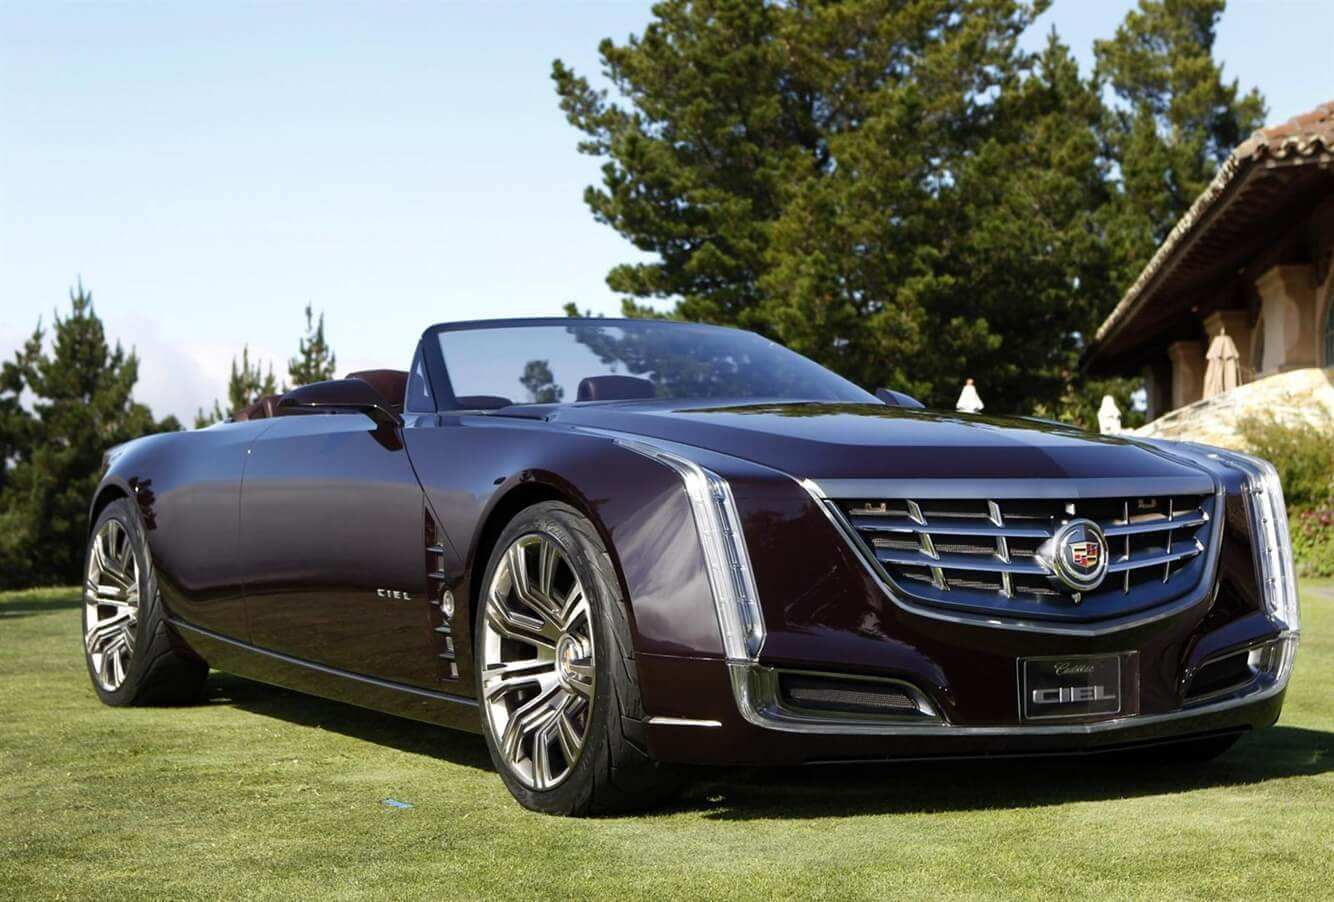 87 All New 2020 Cadillac Convertible Ratings